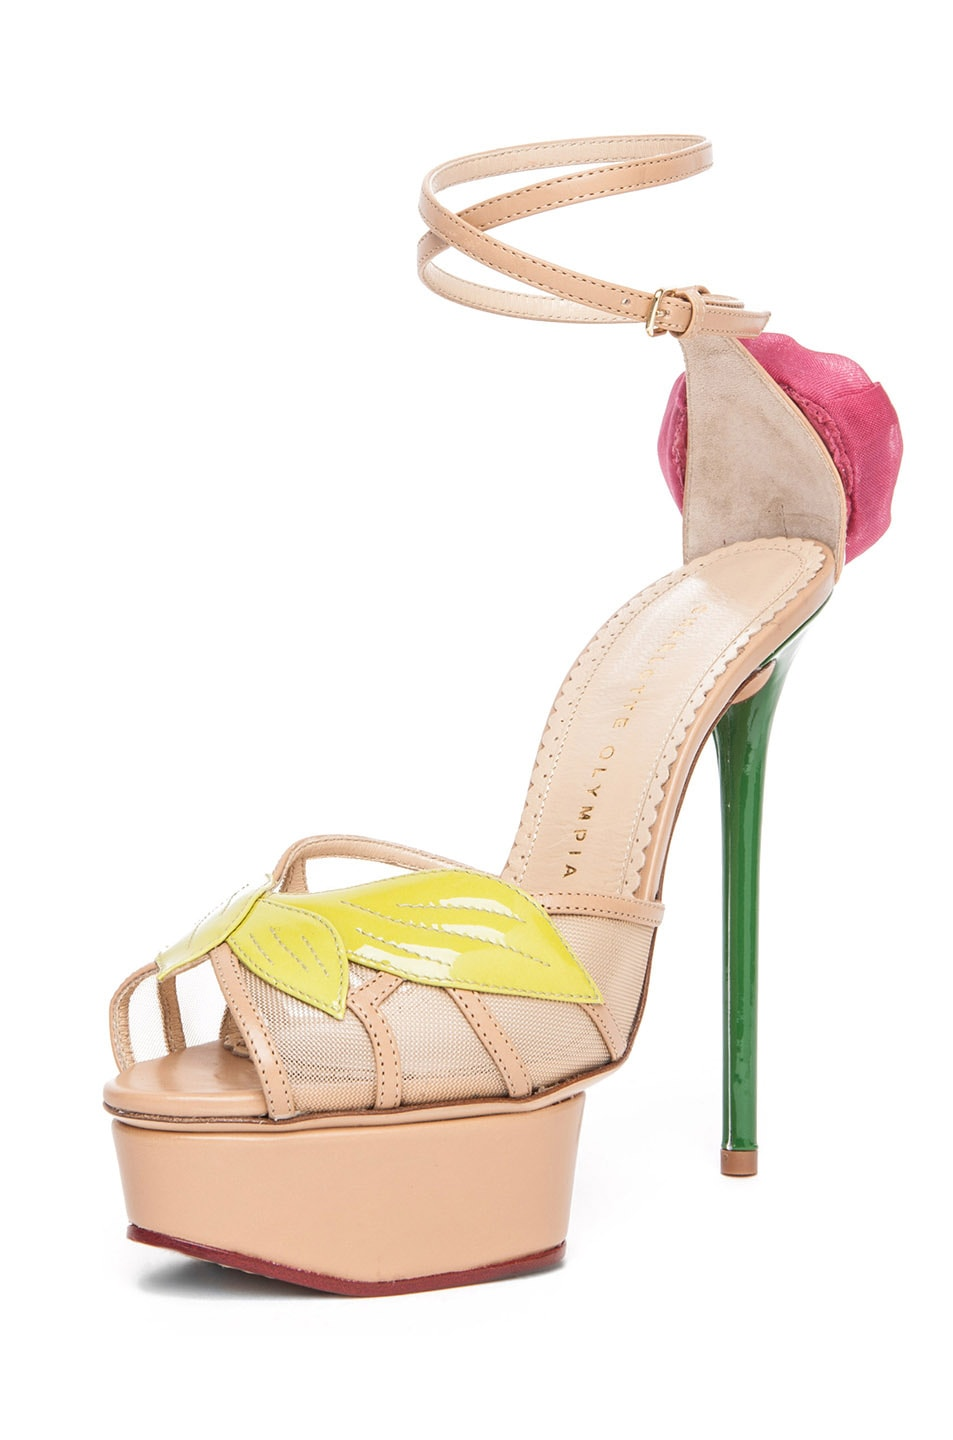 Image 2 of Charlotte Olympia Rose Leather Sandal with Rose and Leaf in Chartreuse & Nude